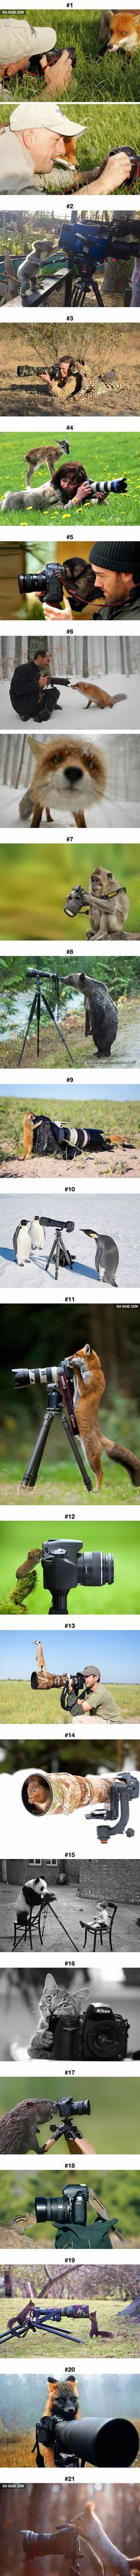 Animals That Want To Be Photographers - 9GAG